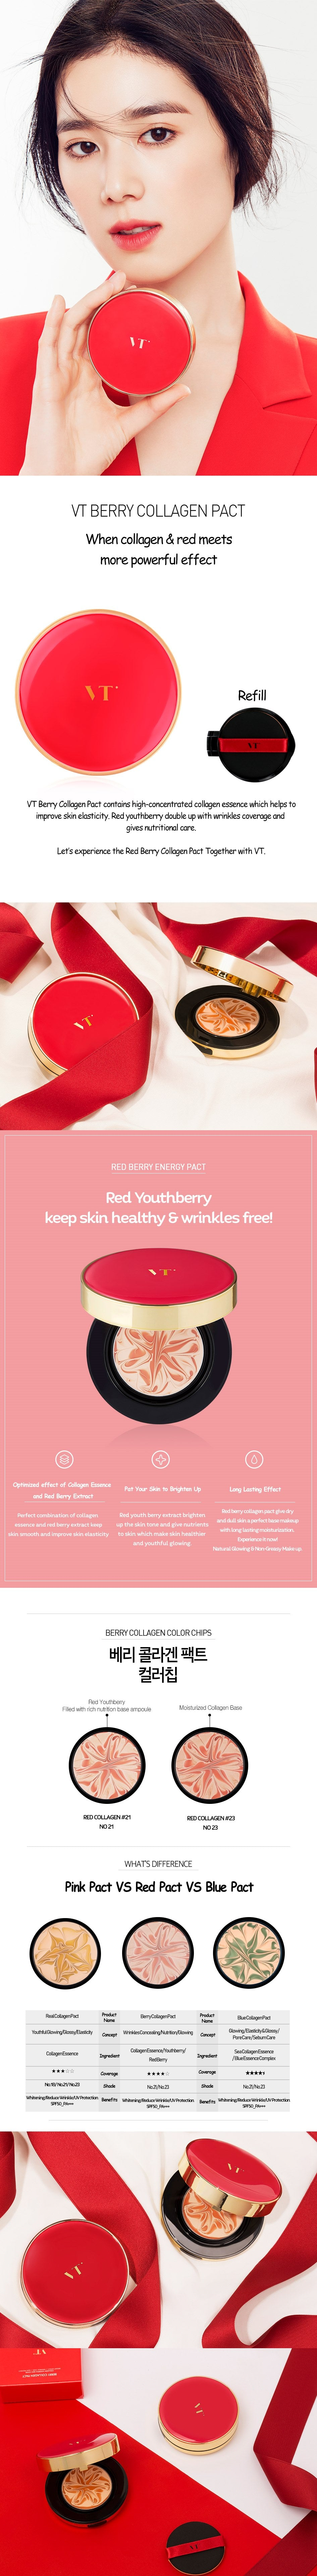 VT Berry Collagen Pact - Description